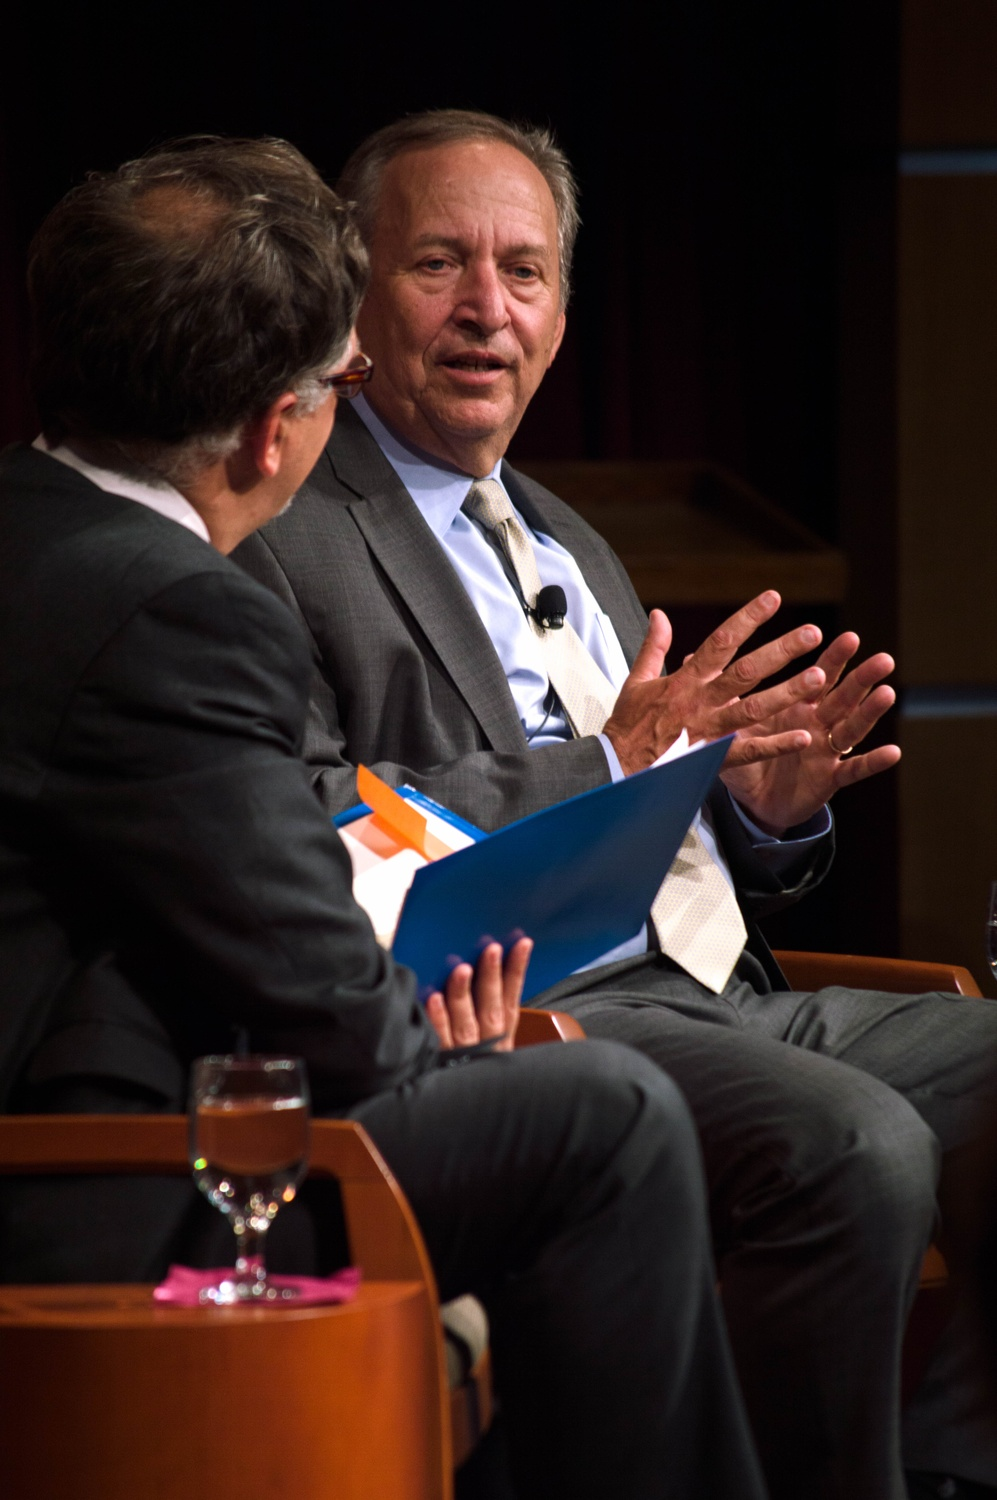 At a Thursday evening forum discussion, former University President Larry Summers shares with Financial Times columnist John Authers his thoughts about inclusivity in modern economic growth.